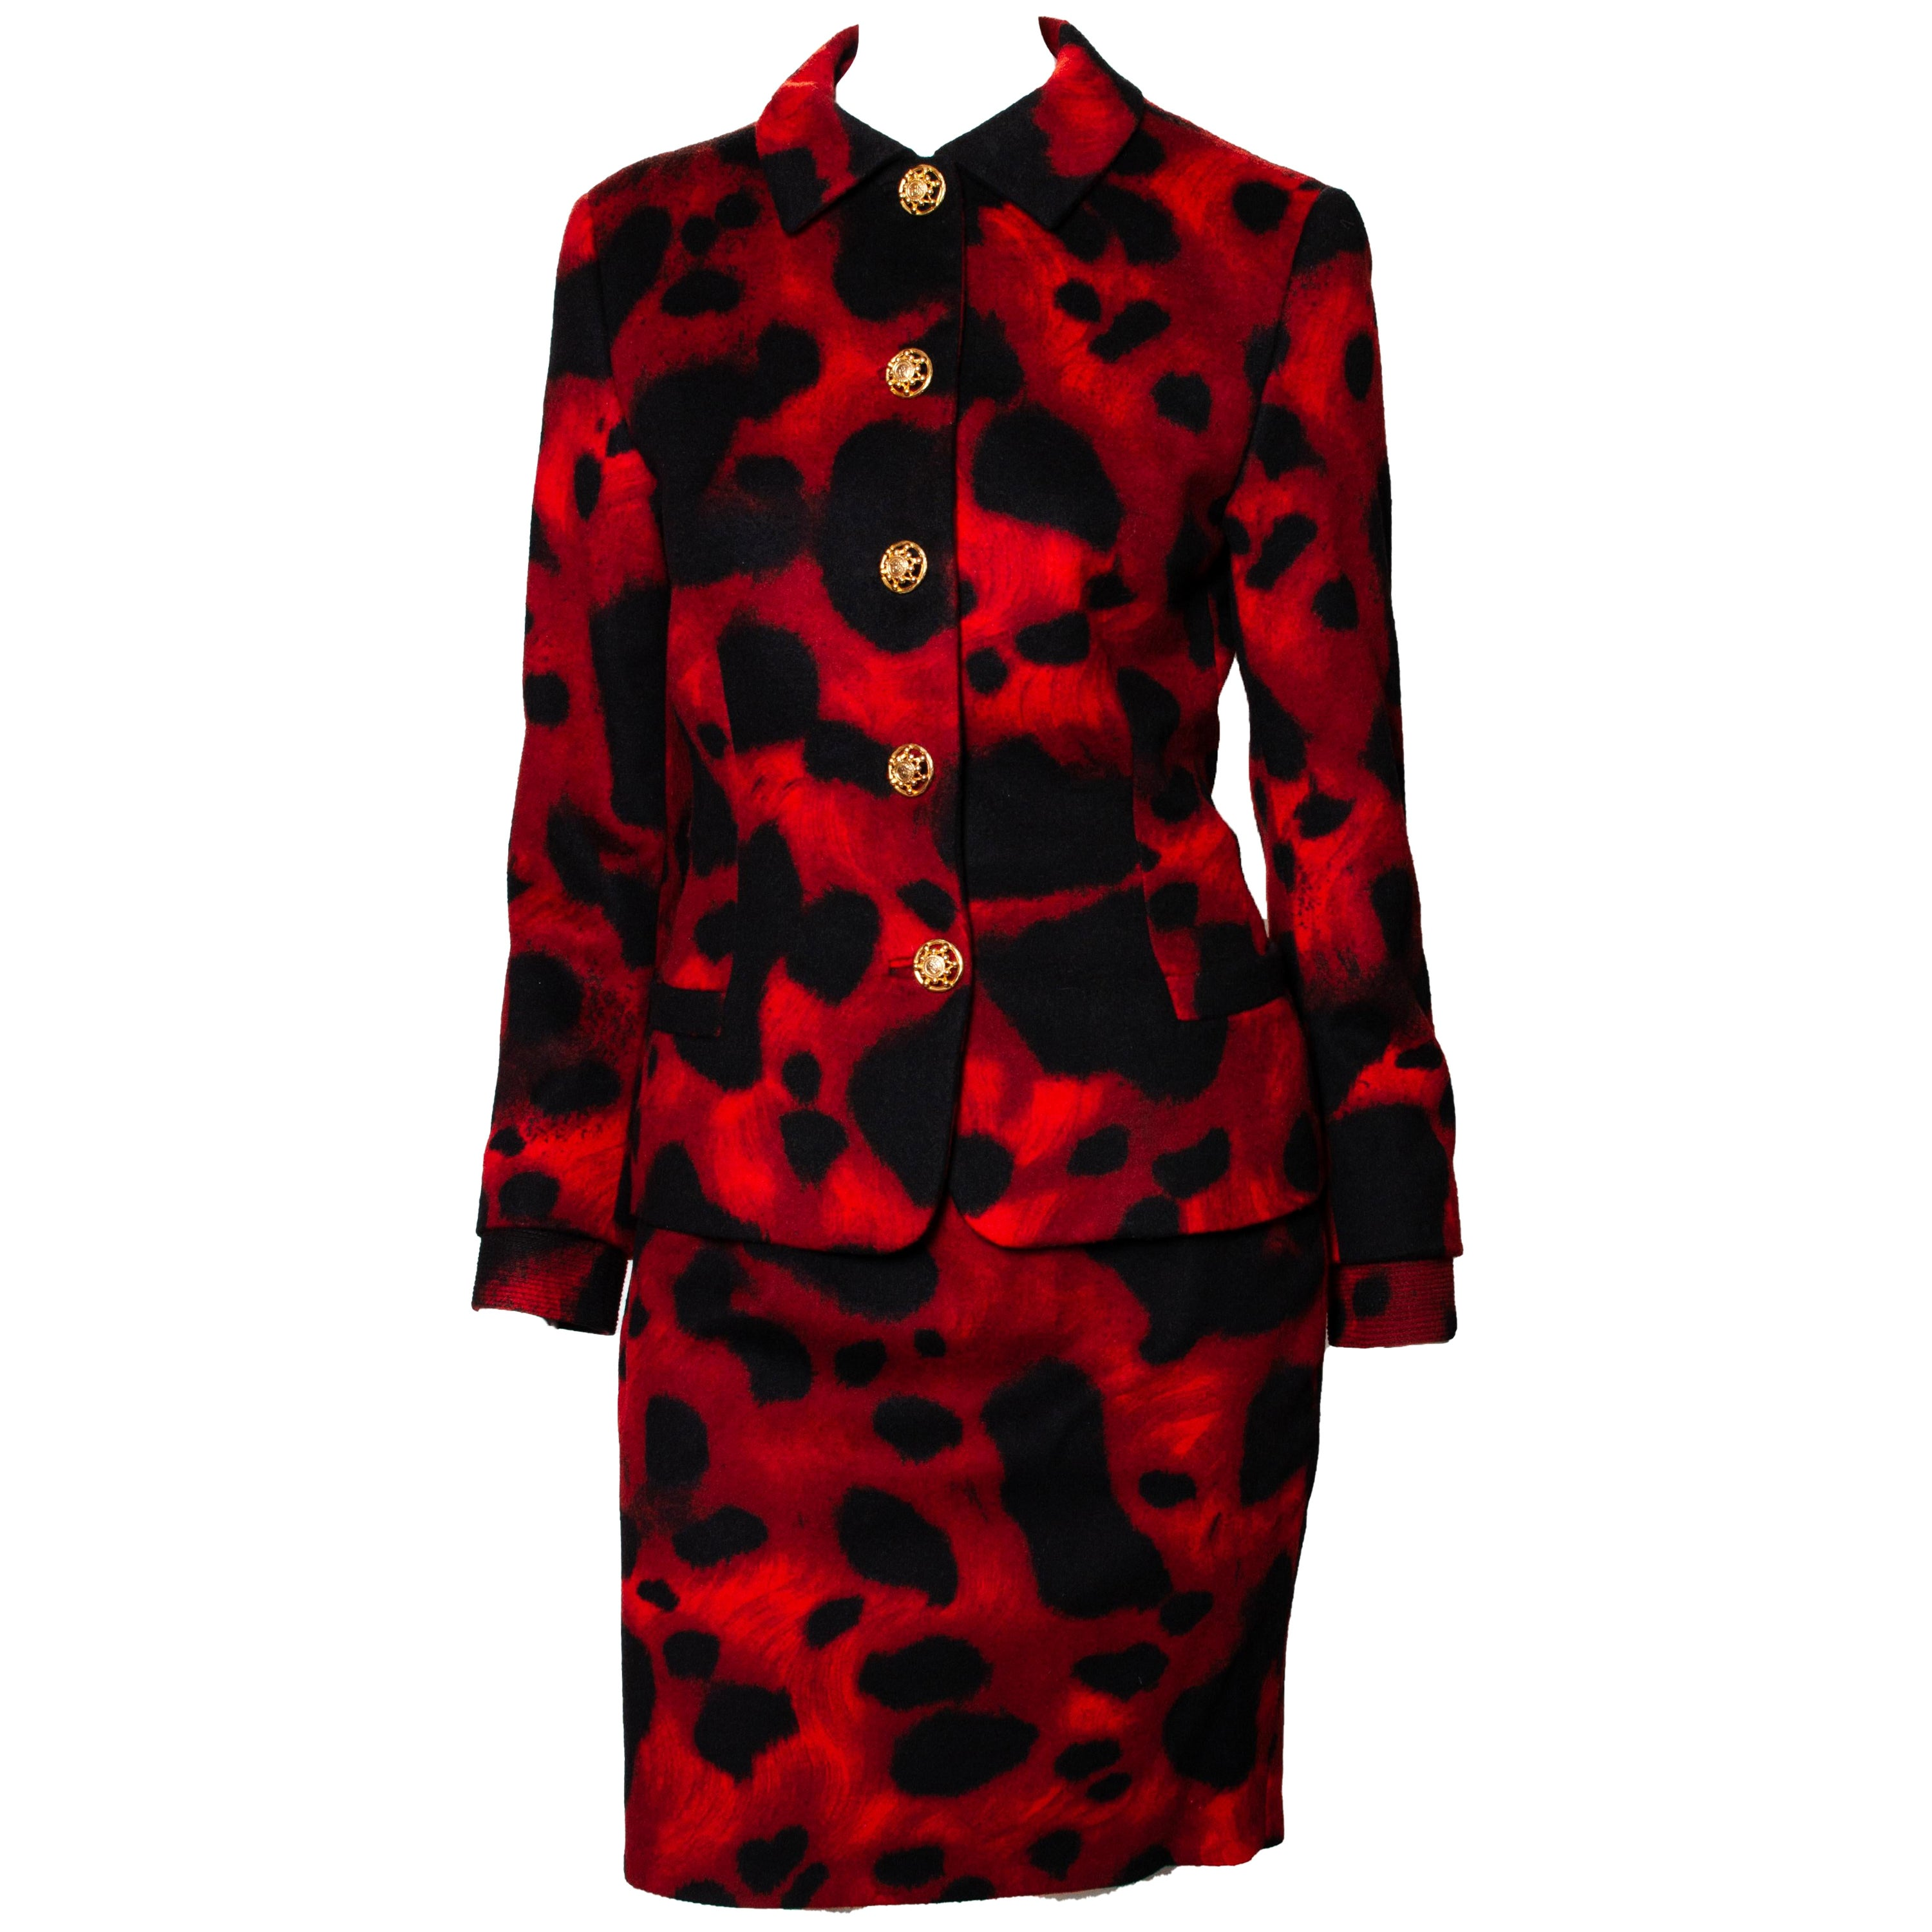 F/W 1992 Gianni Versace Red Leopard Print Skirt Suit